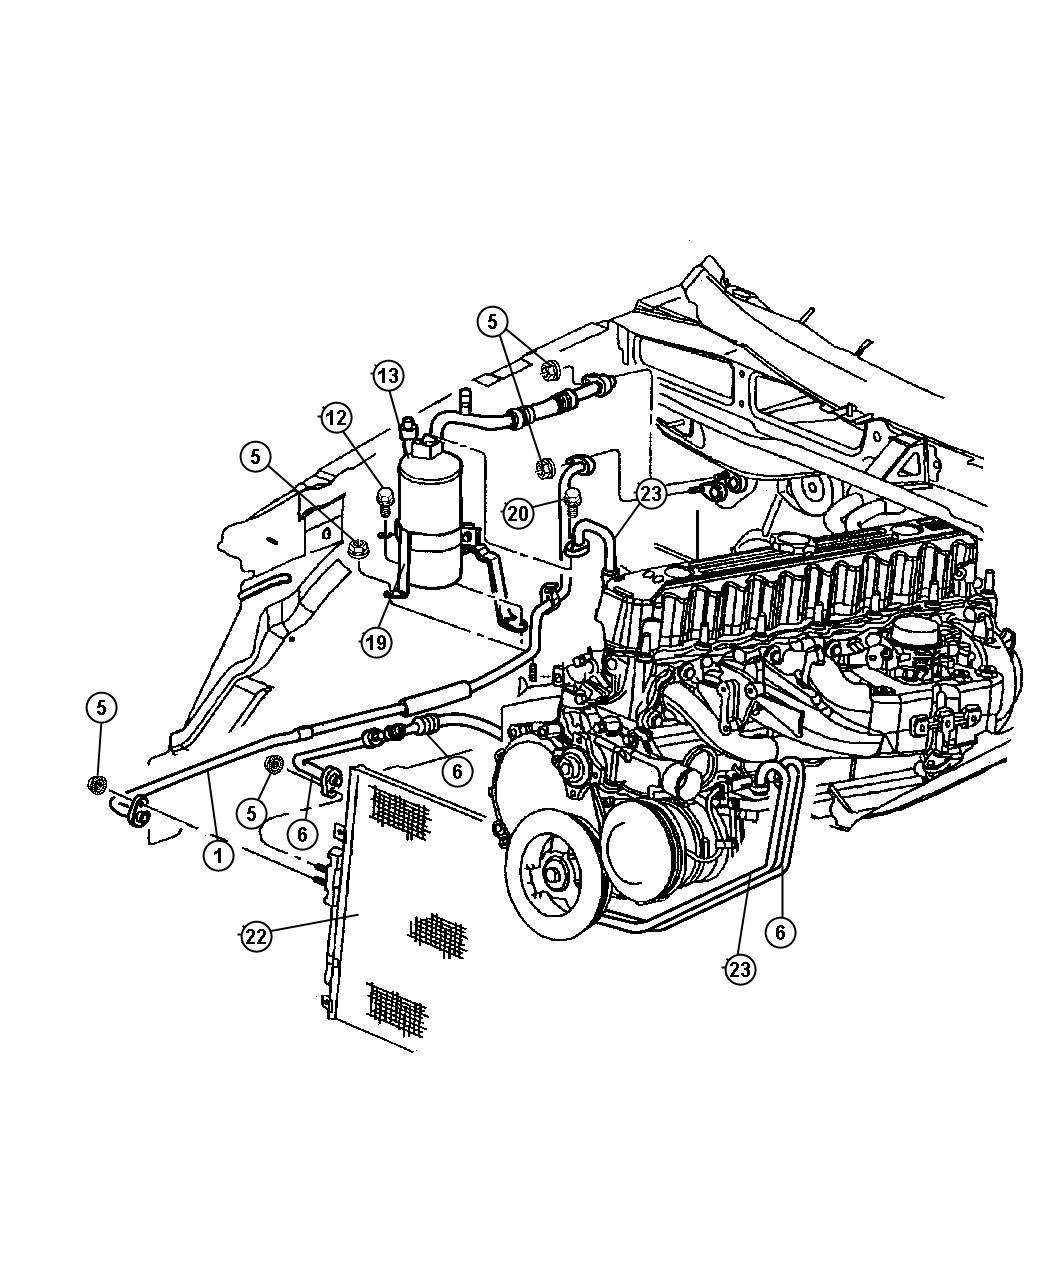 Jeep Grand Cherokee Condenser Air Conditioning Export